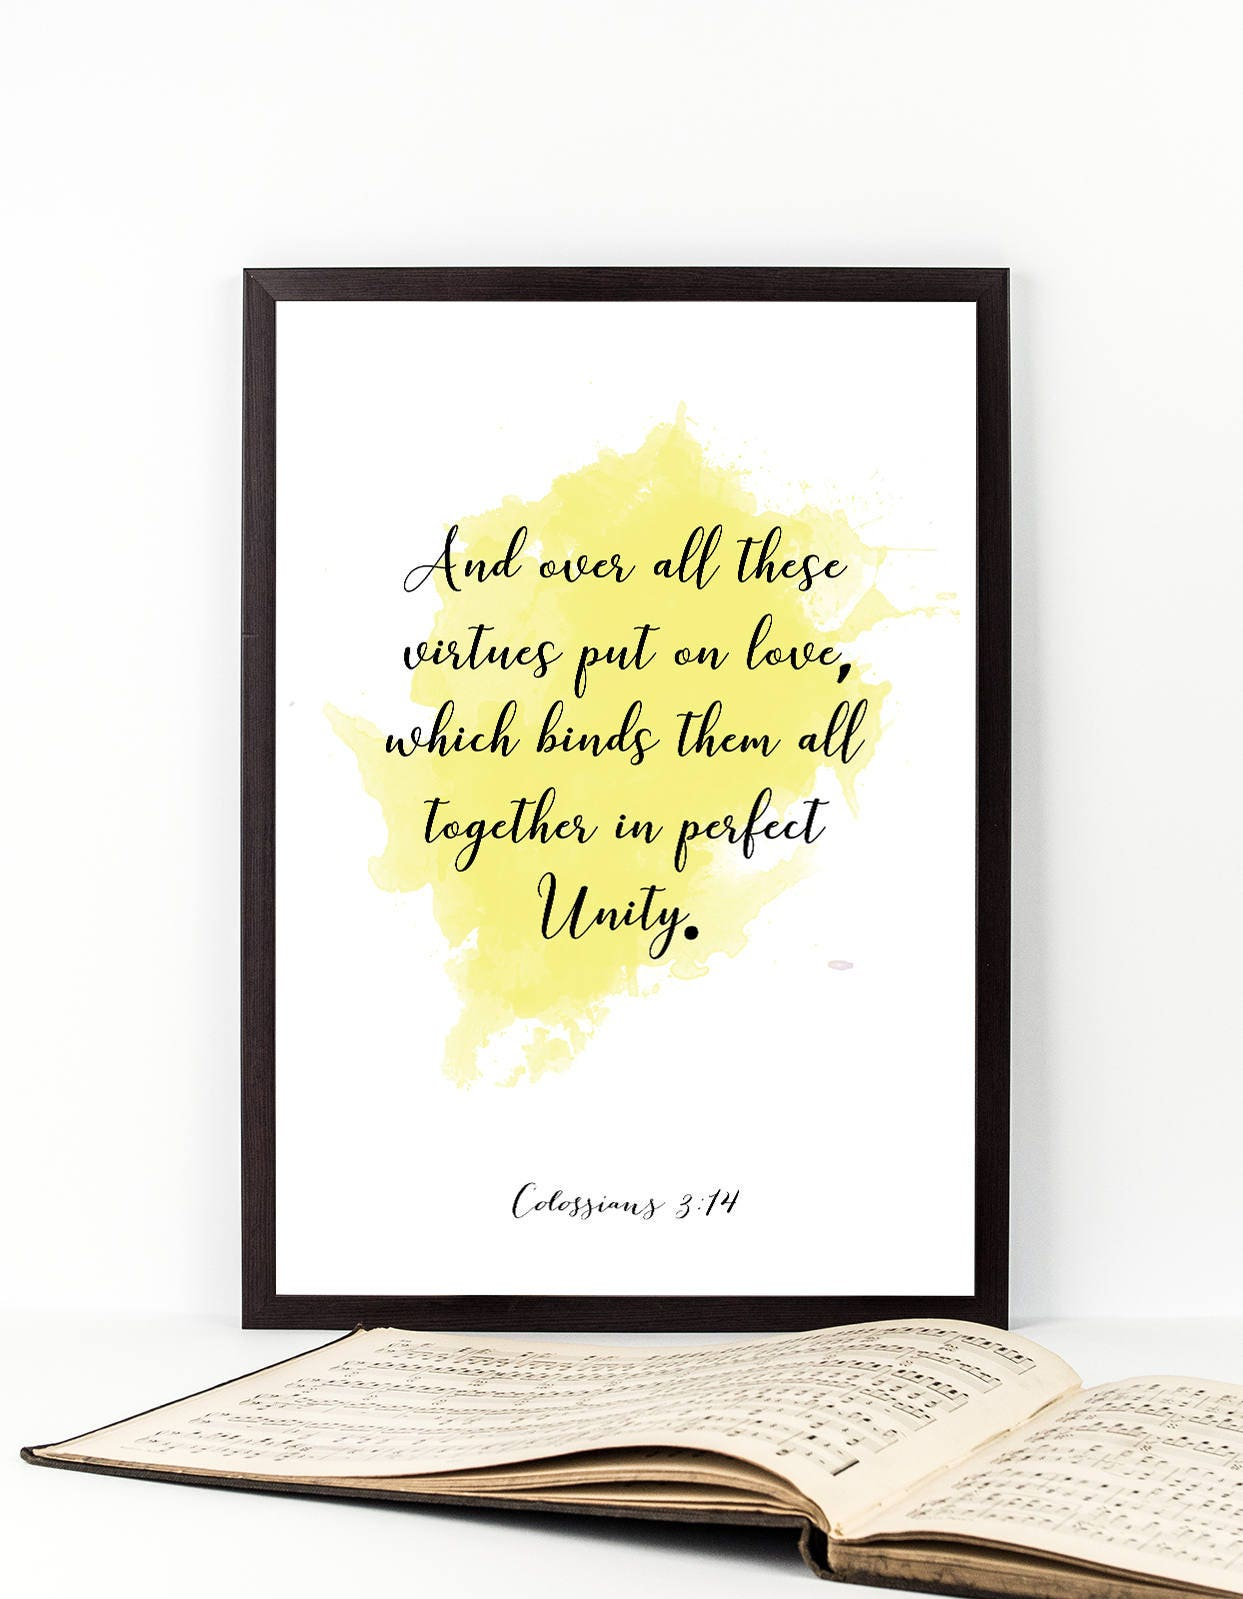 Bible Quotes For Wedding Colossians 314 Wedding Bible Verse Wedding Bible Bible